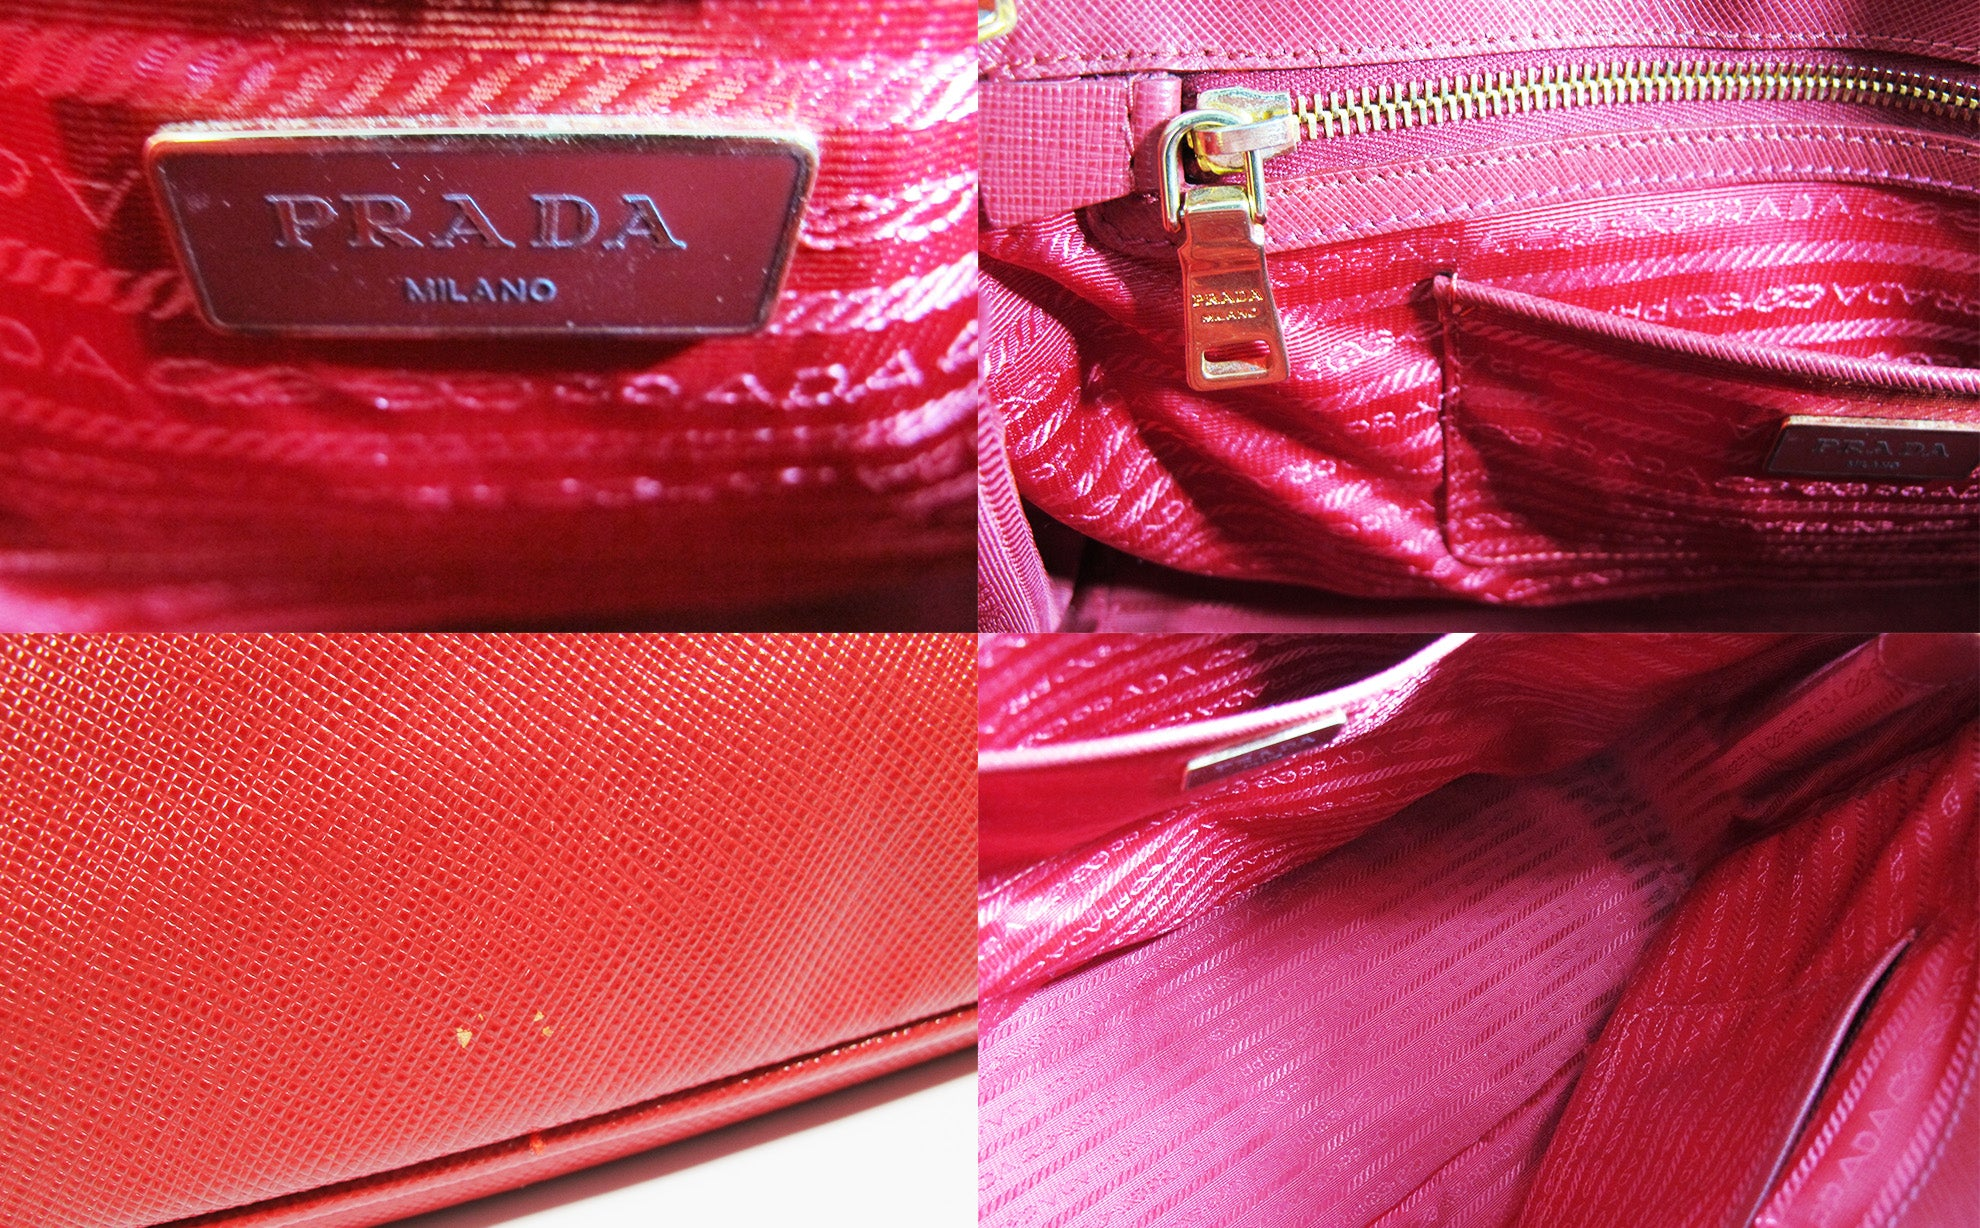 4542c46aa08e BN1802 Red Saffiano Lux Leather Double Zip Executive Tote Bag - Glampot